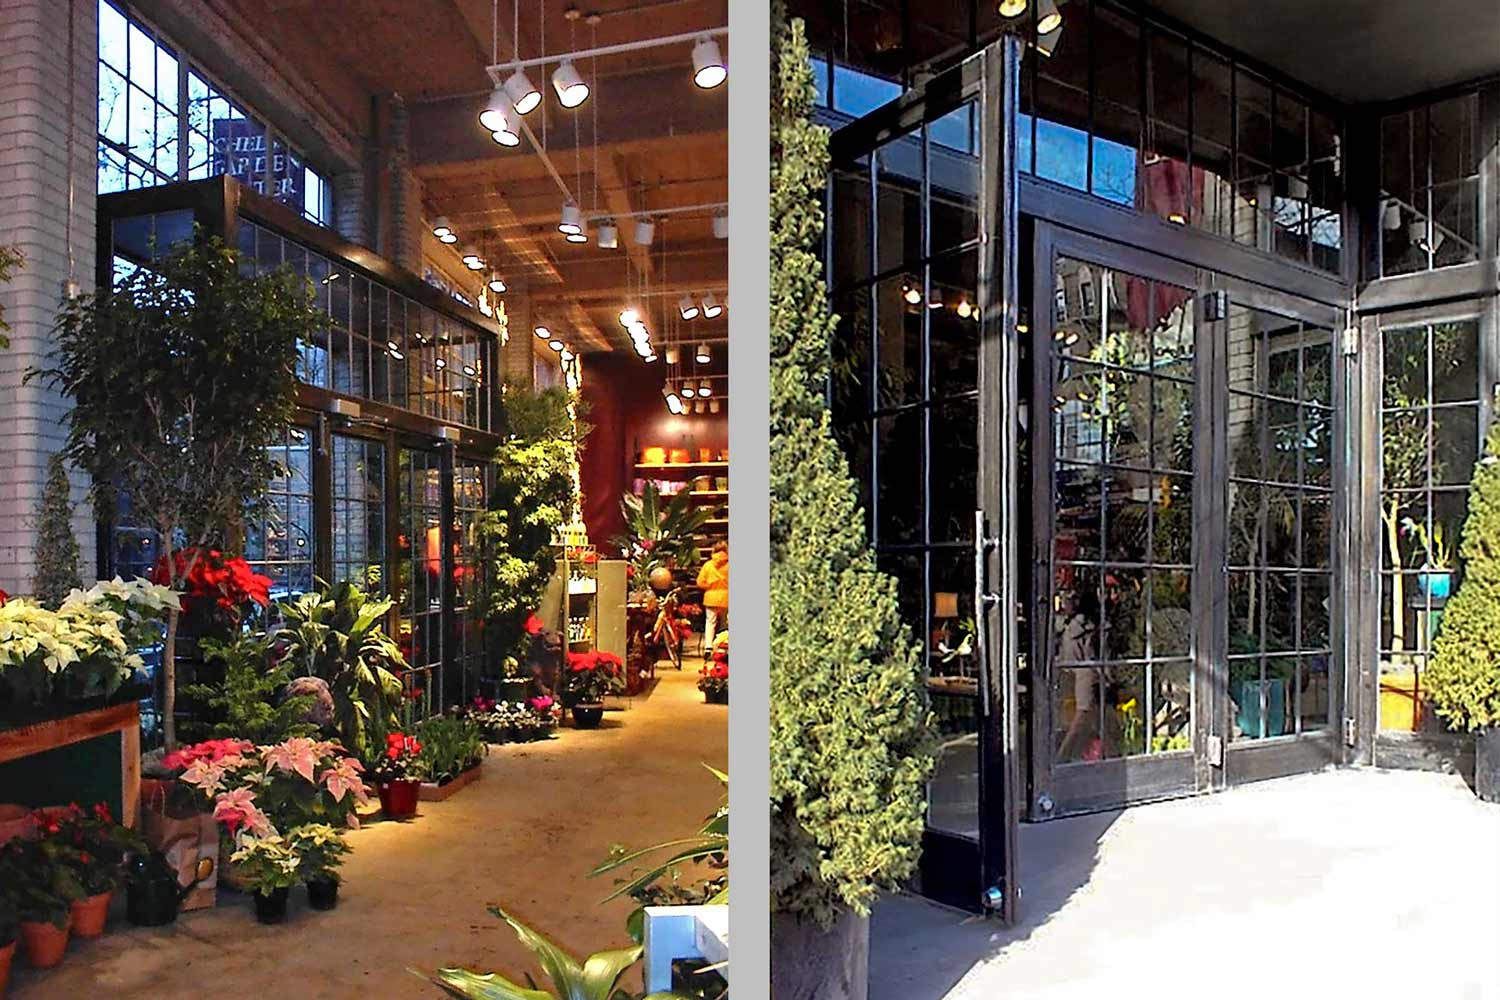 OCV's gut renovation of this raw industrial space resulted in a lavish retail garden center.